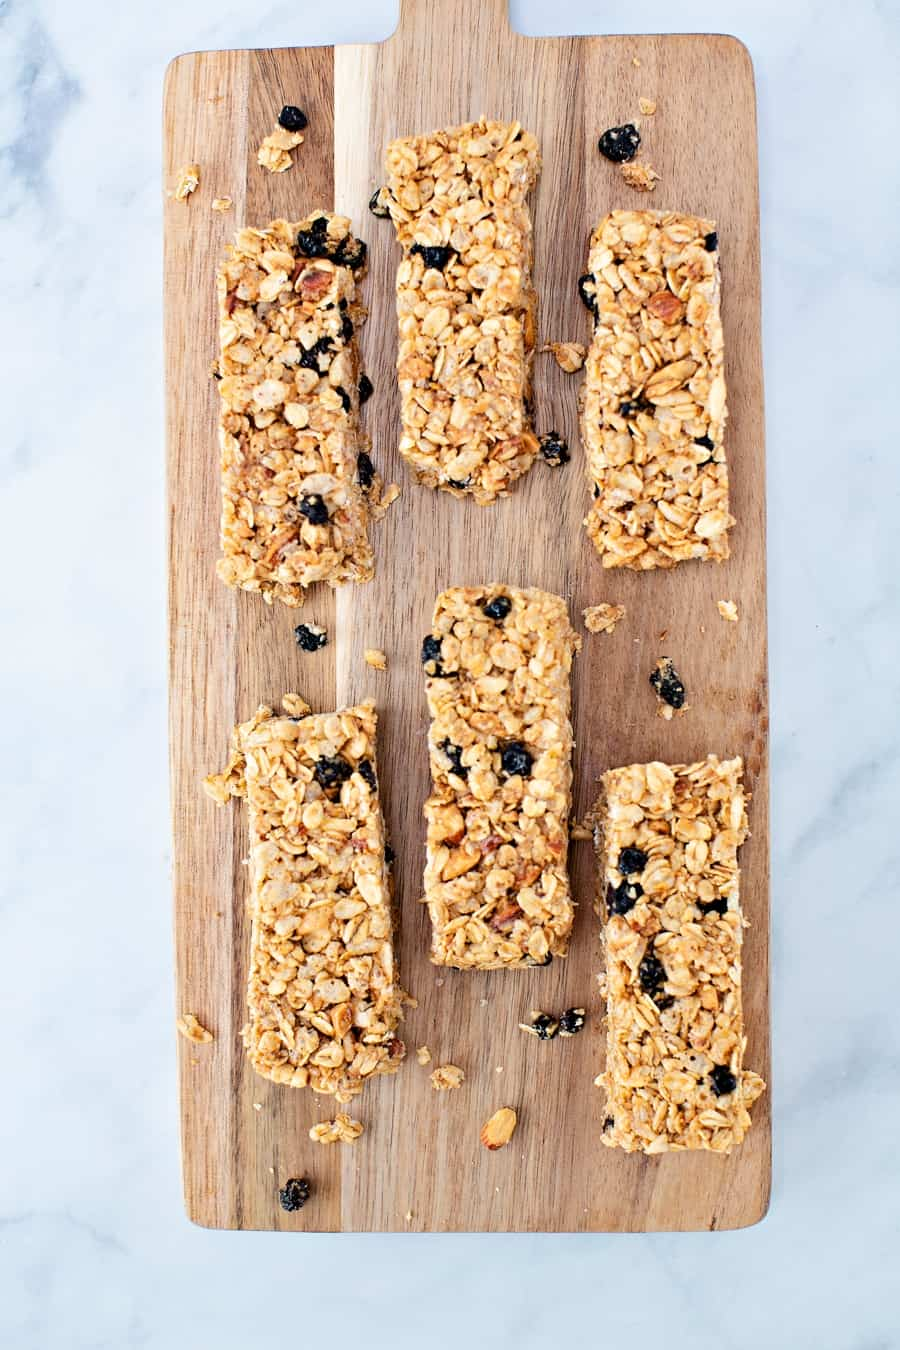 No Bake Blueberry Almond Granola Bars on a wooden cutting board